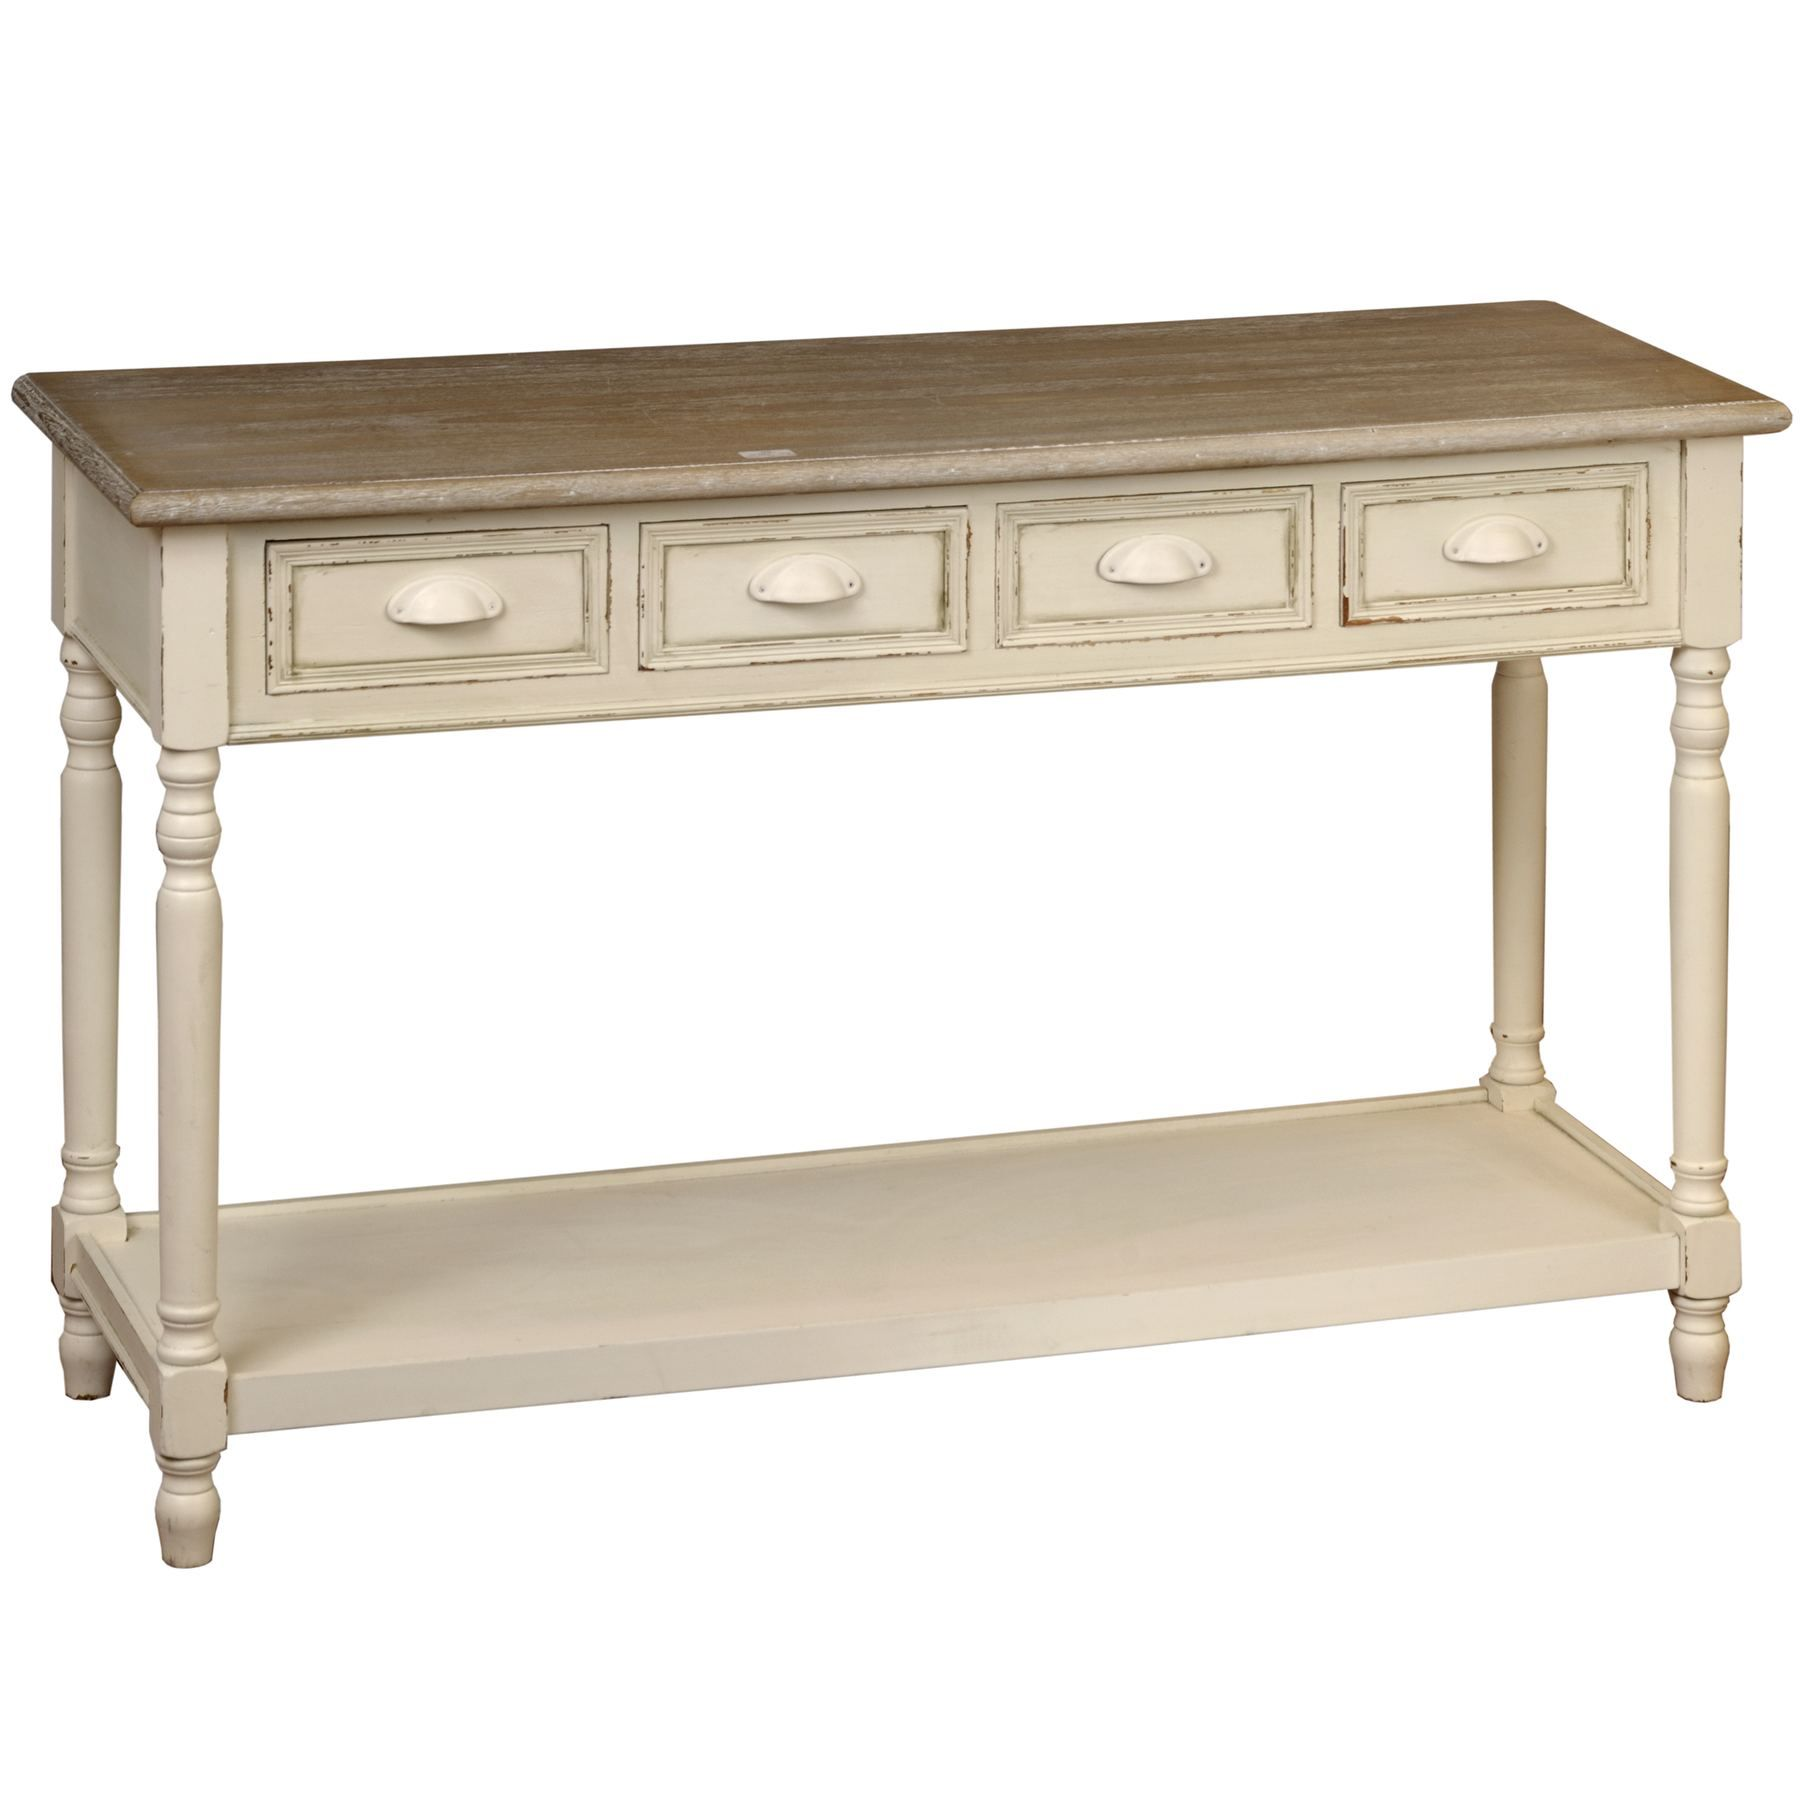 Country 4 Drawer Kitchen Server